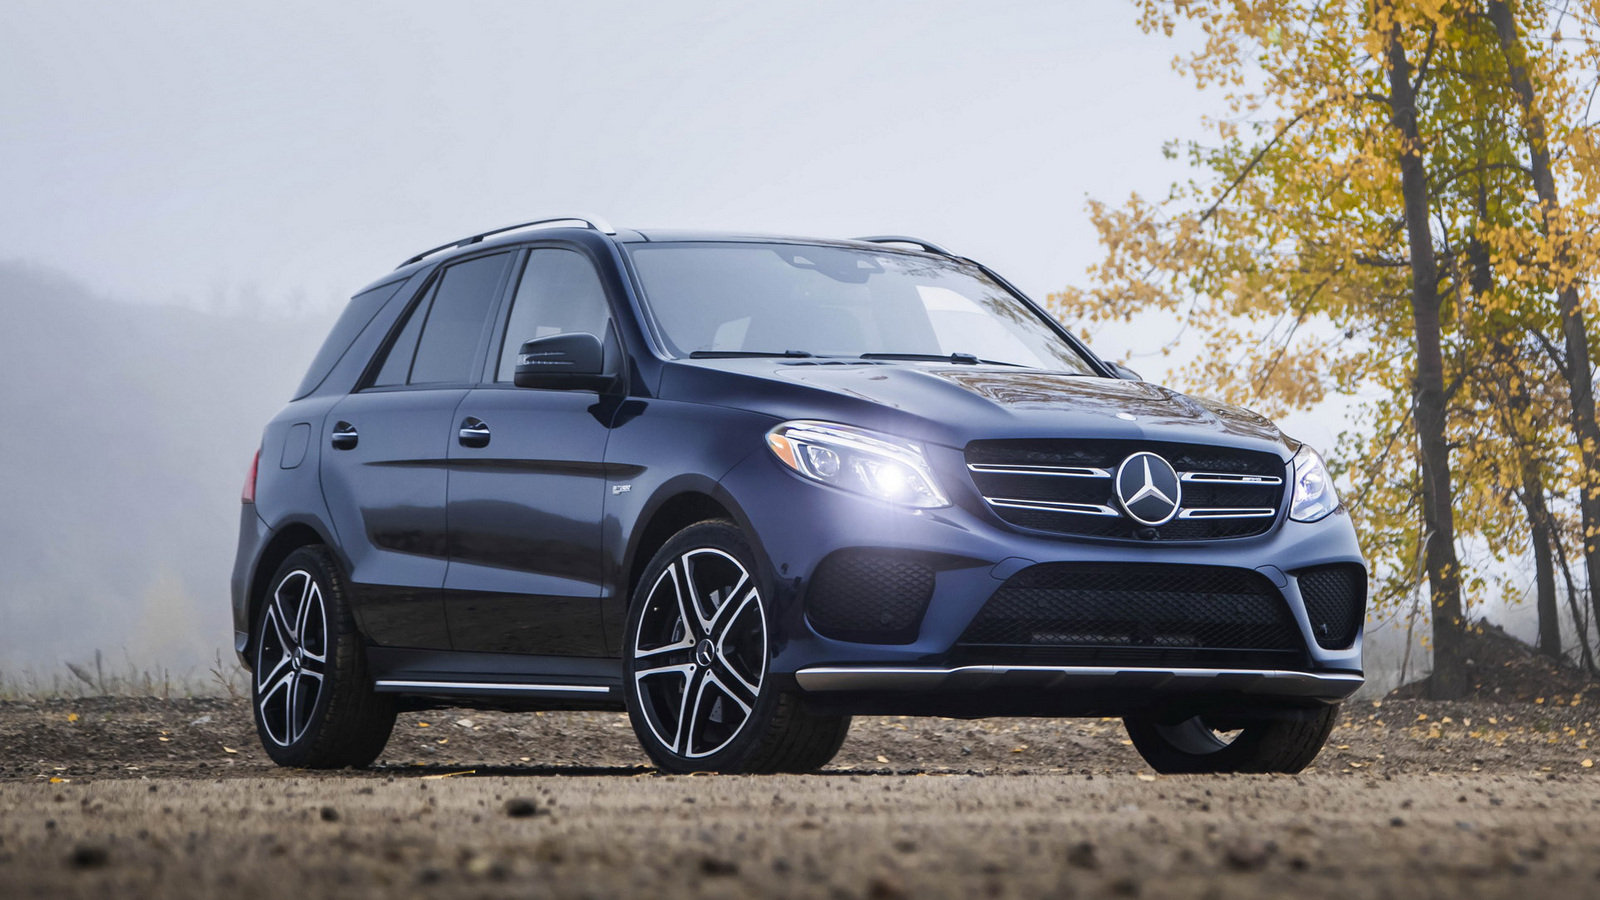 2017 mercedes amg gle43 review top speed. Black Bedroom Furniture Sets. Home Design Ideas